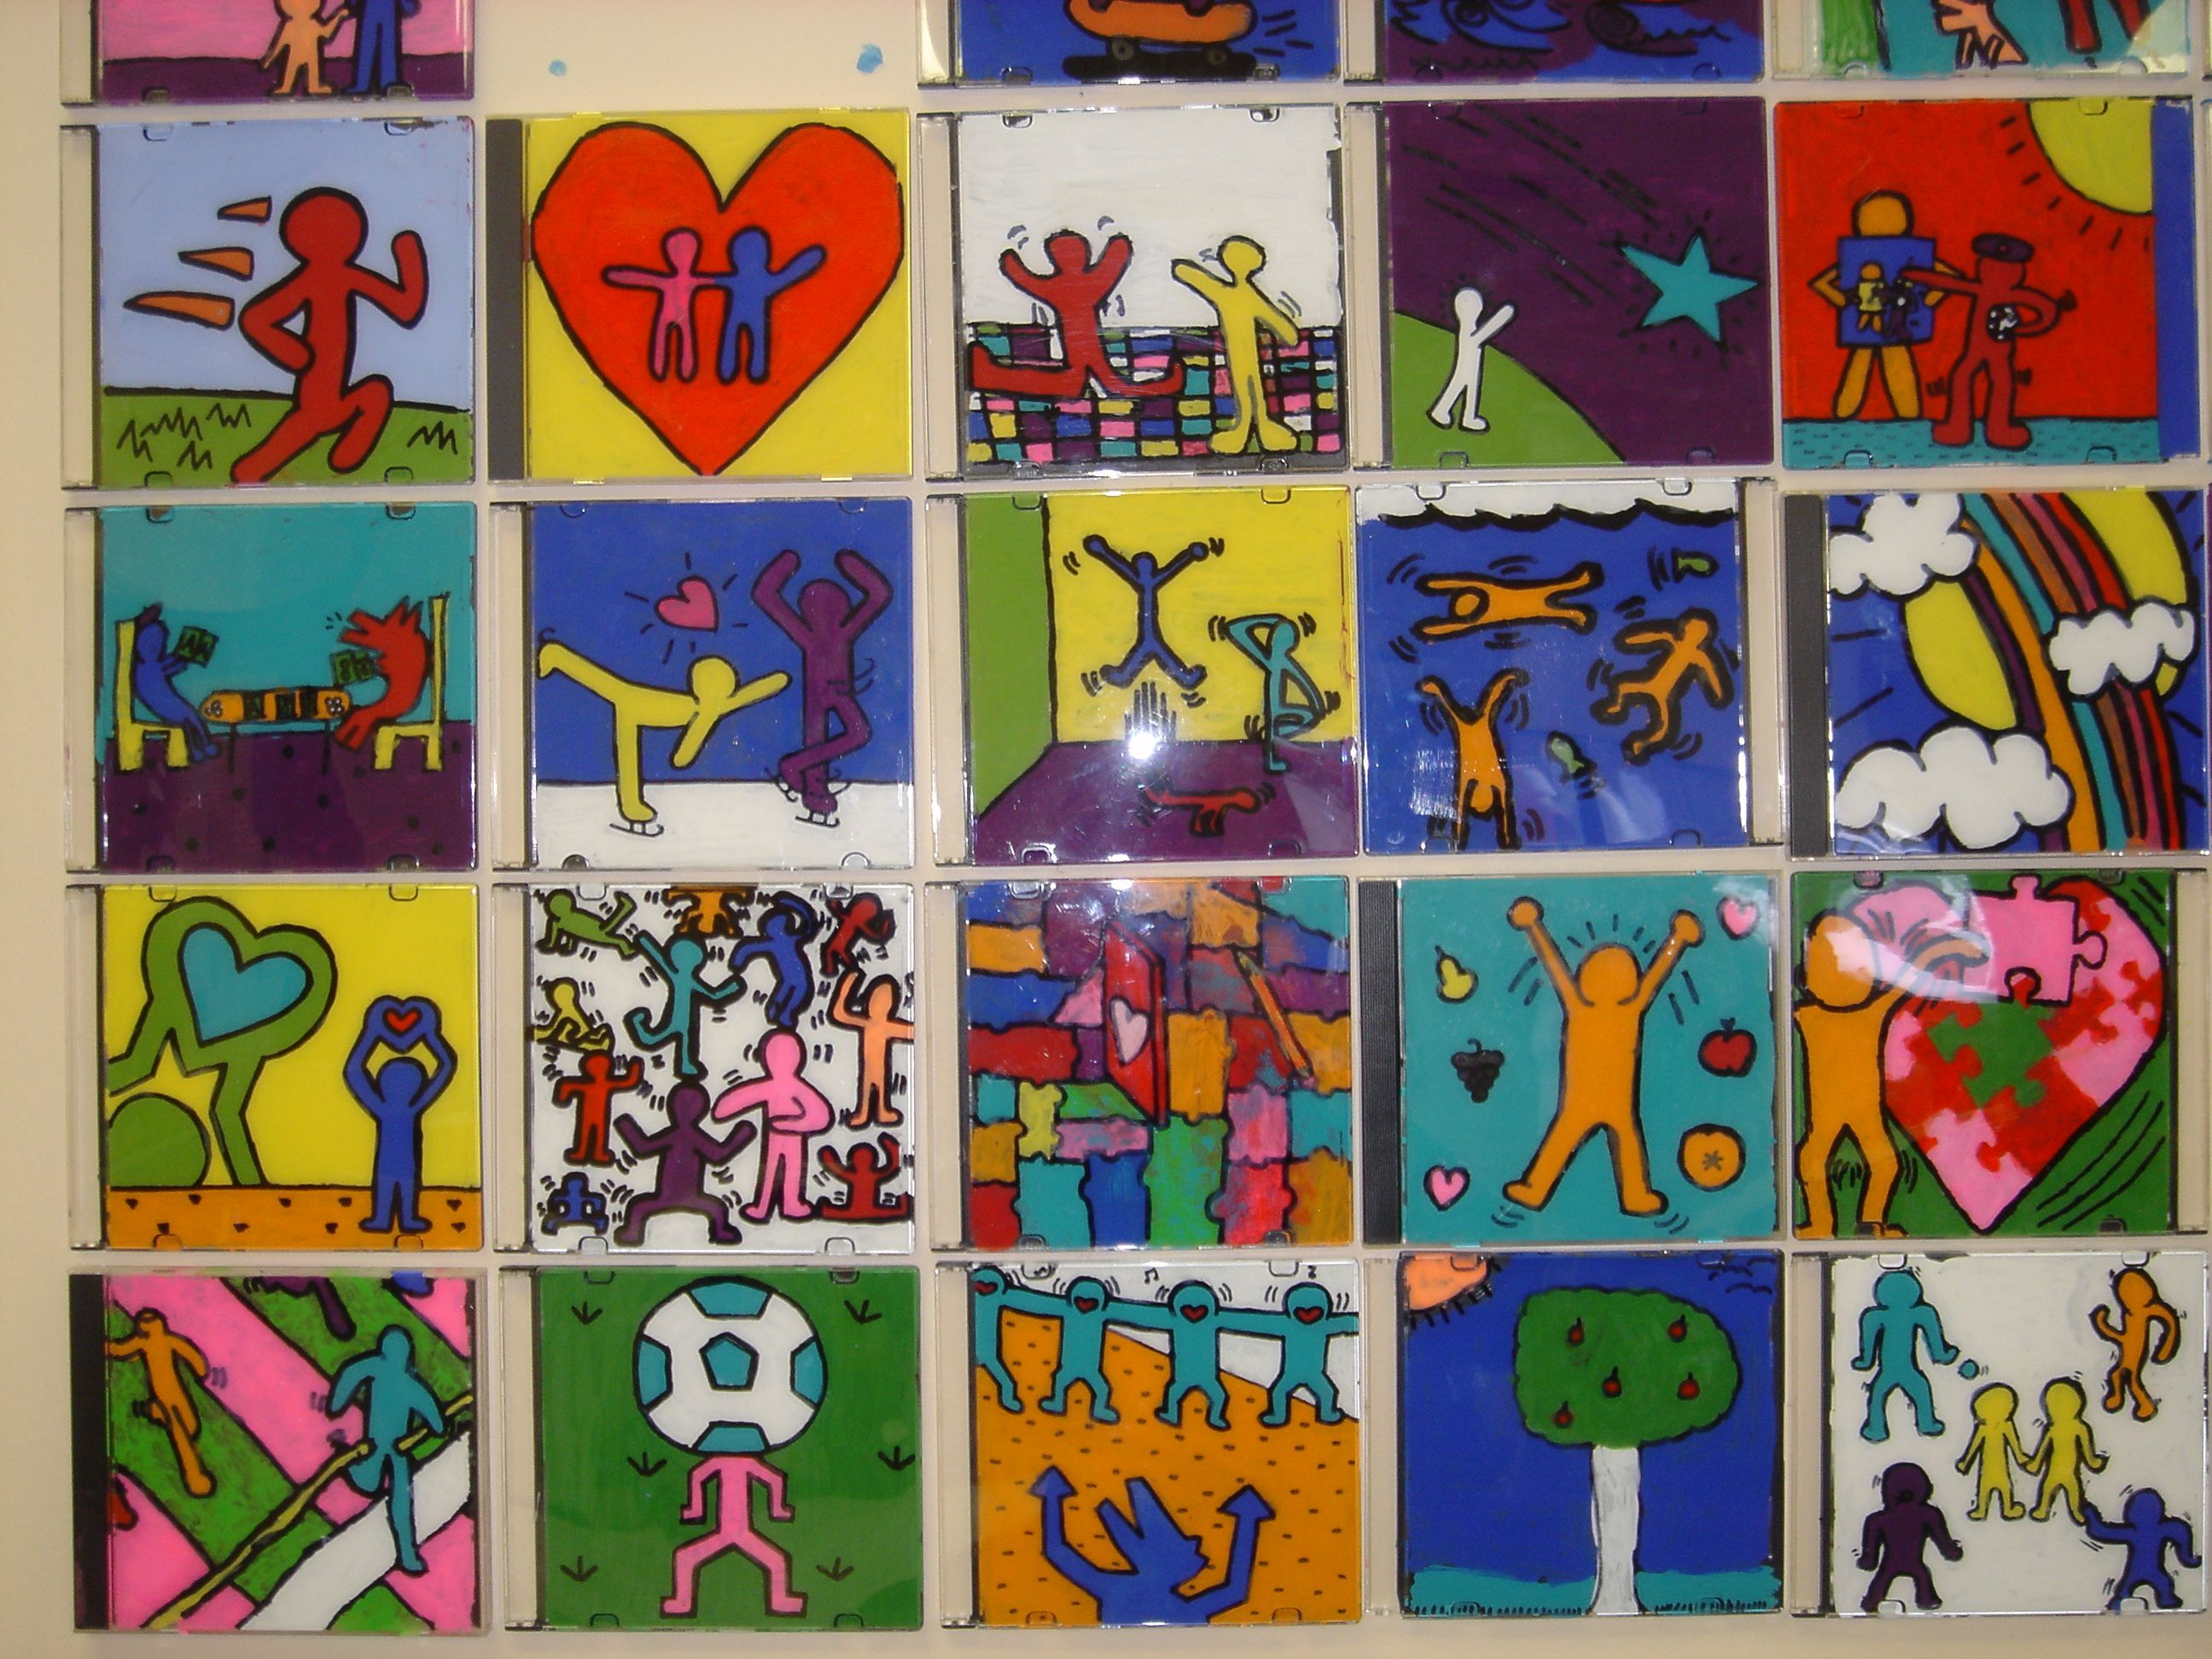 Haring inspired art on cd cases ceiling tile project pinterest haring inspired art on cd cases dailygadgetfo Choice Image